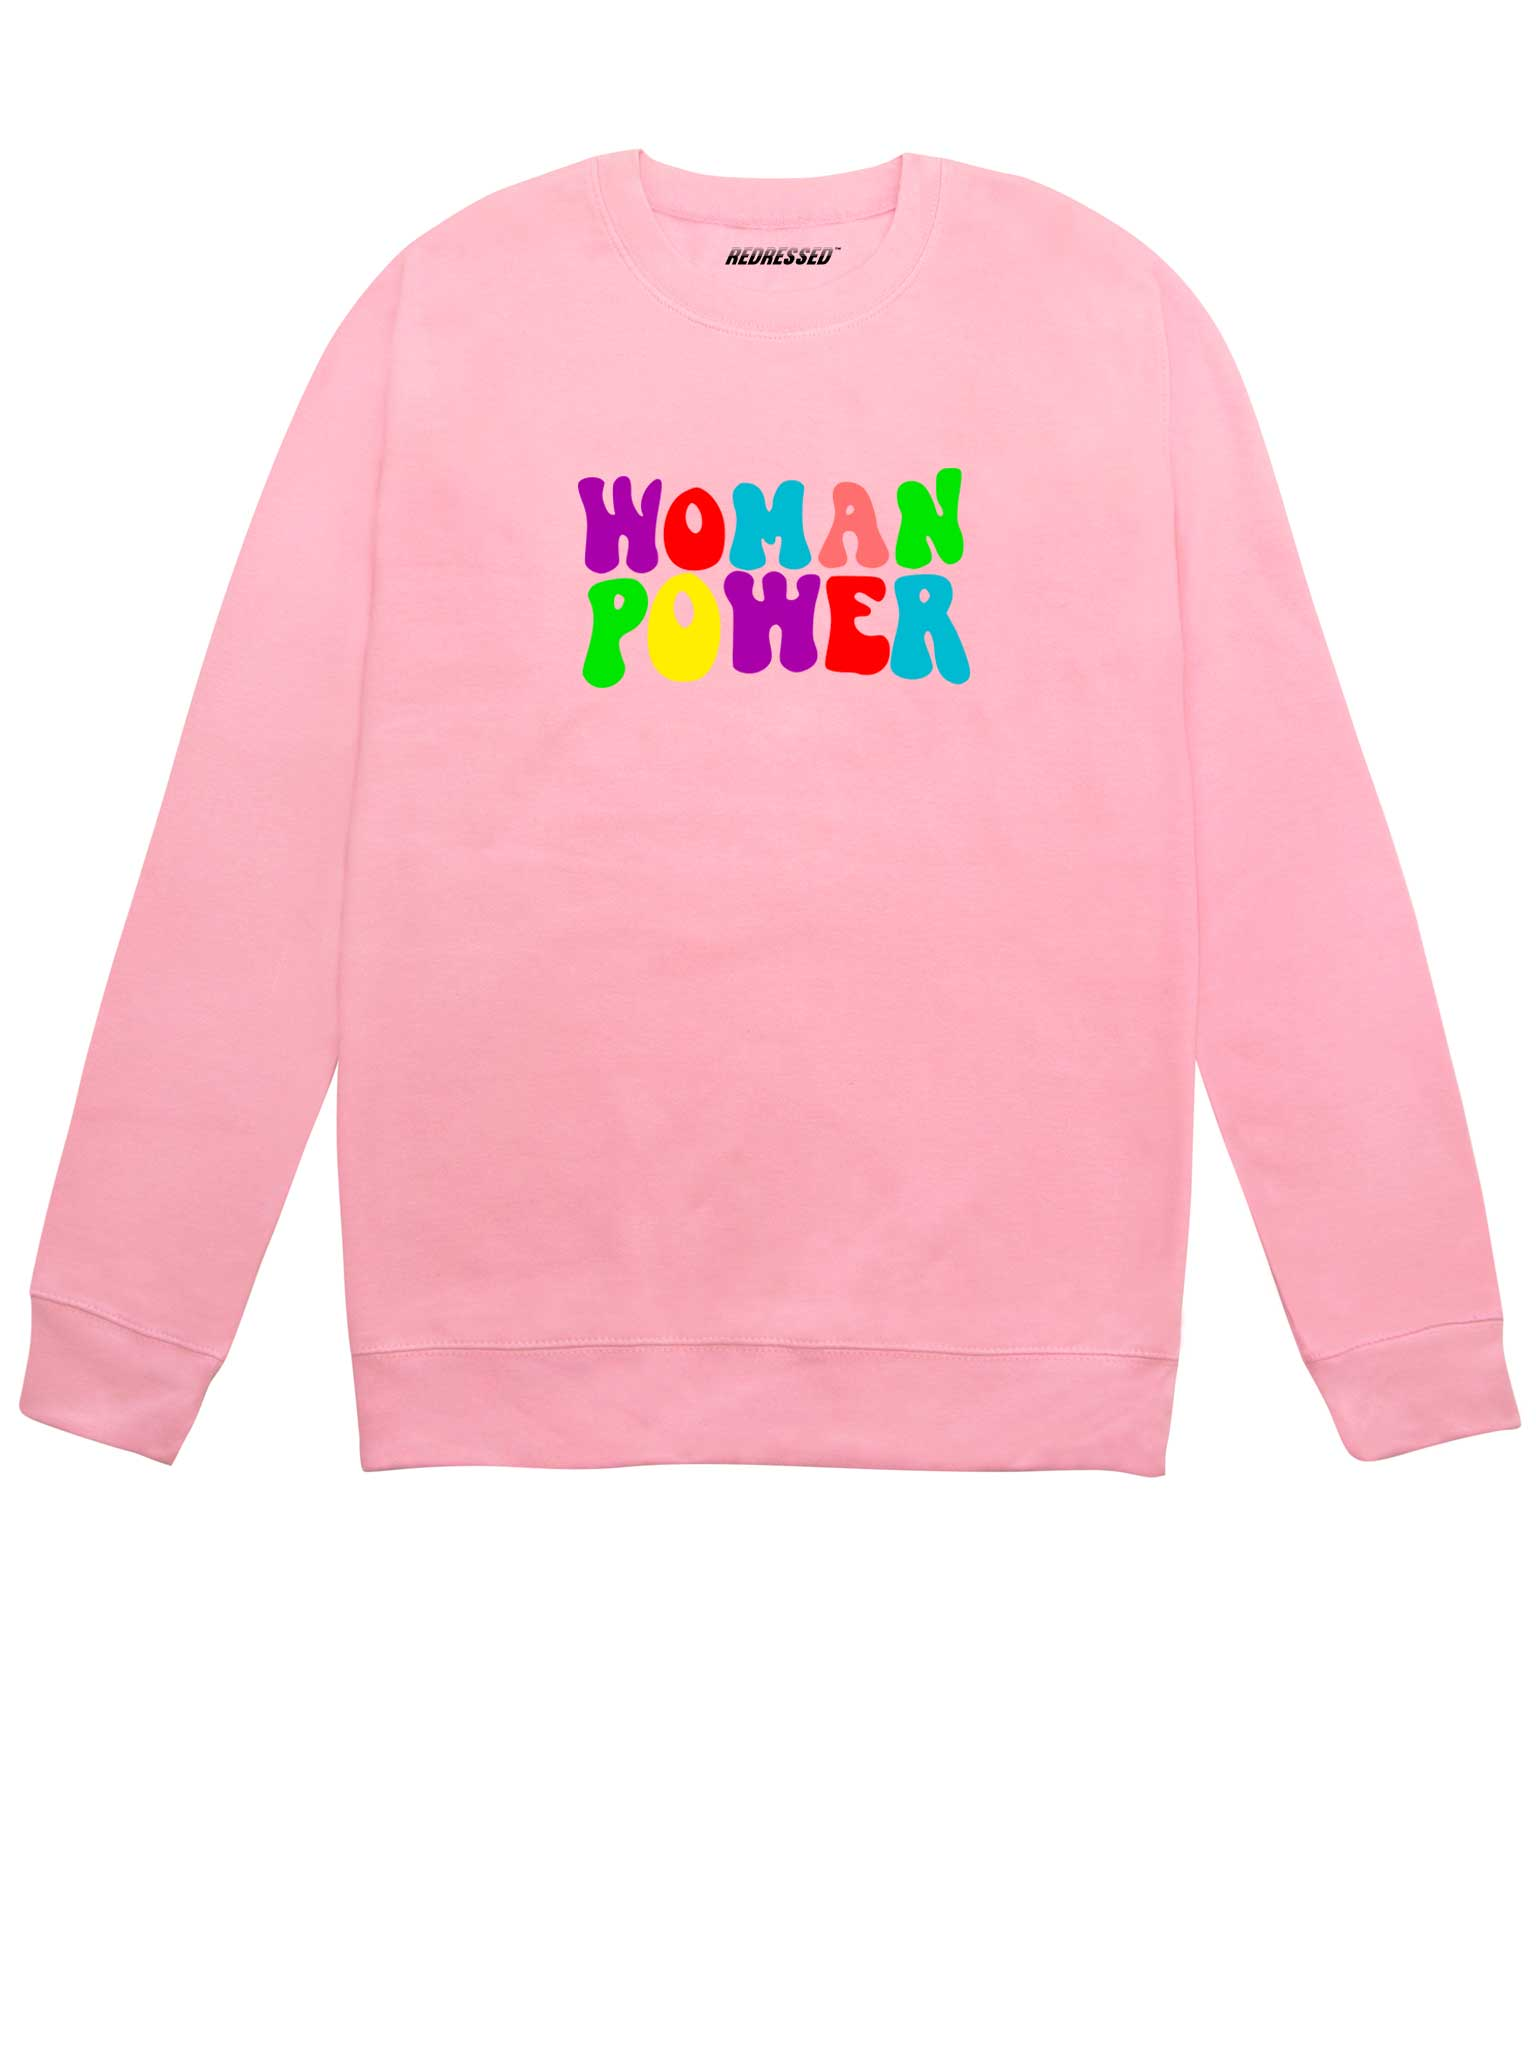 Woman Power Sweatshirt